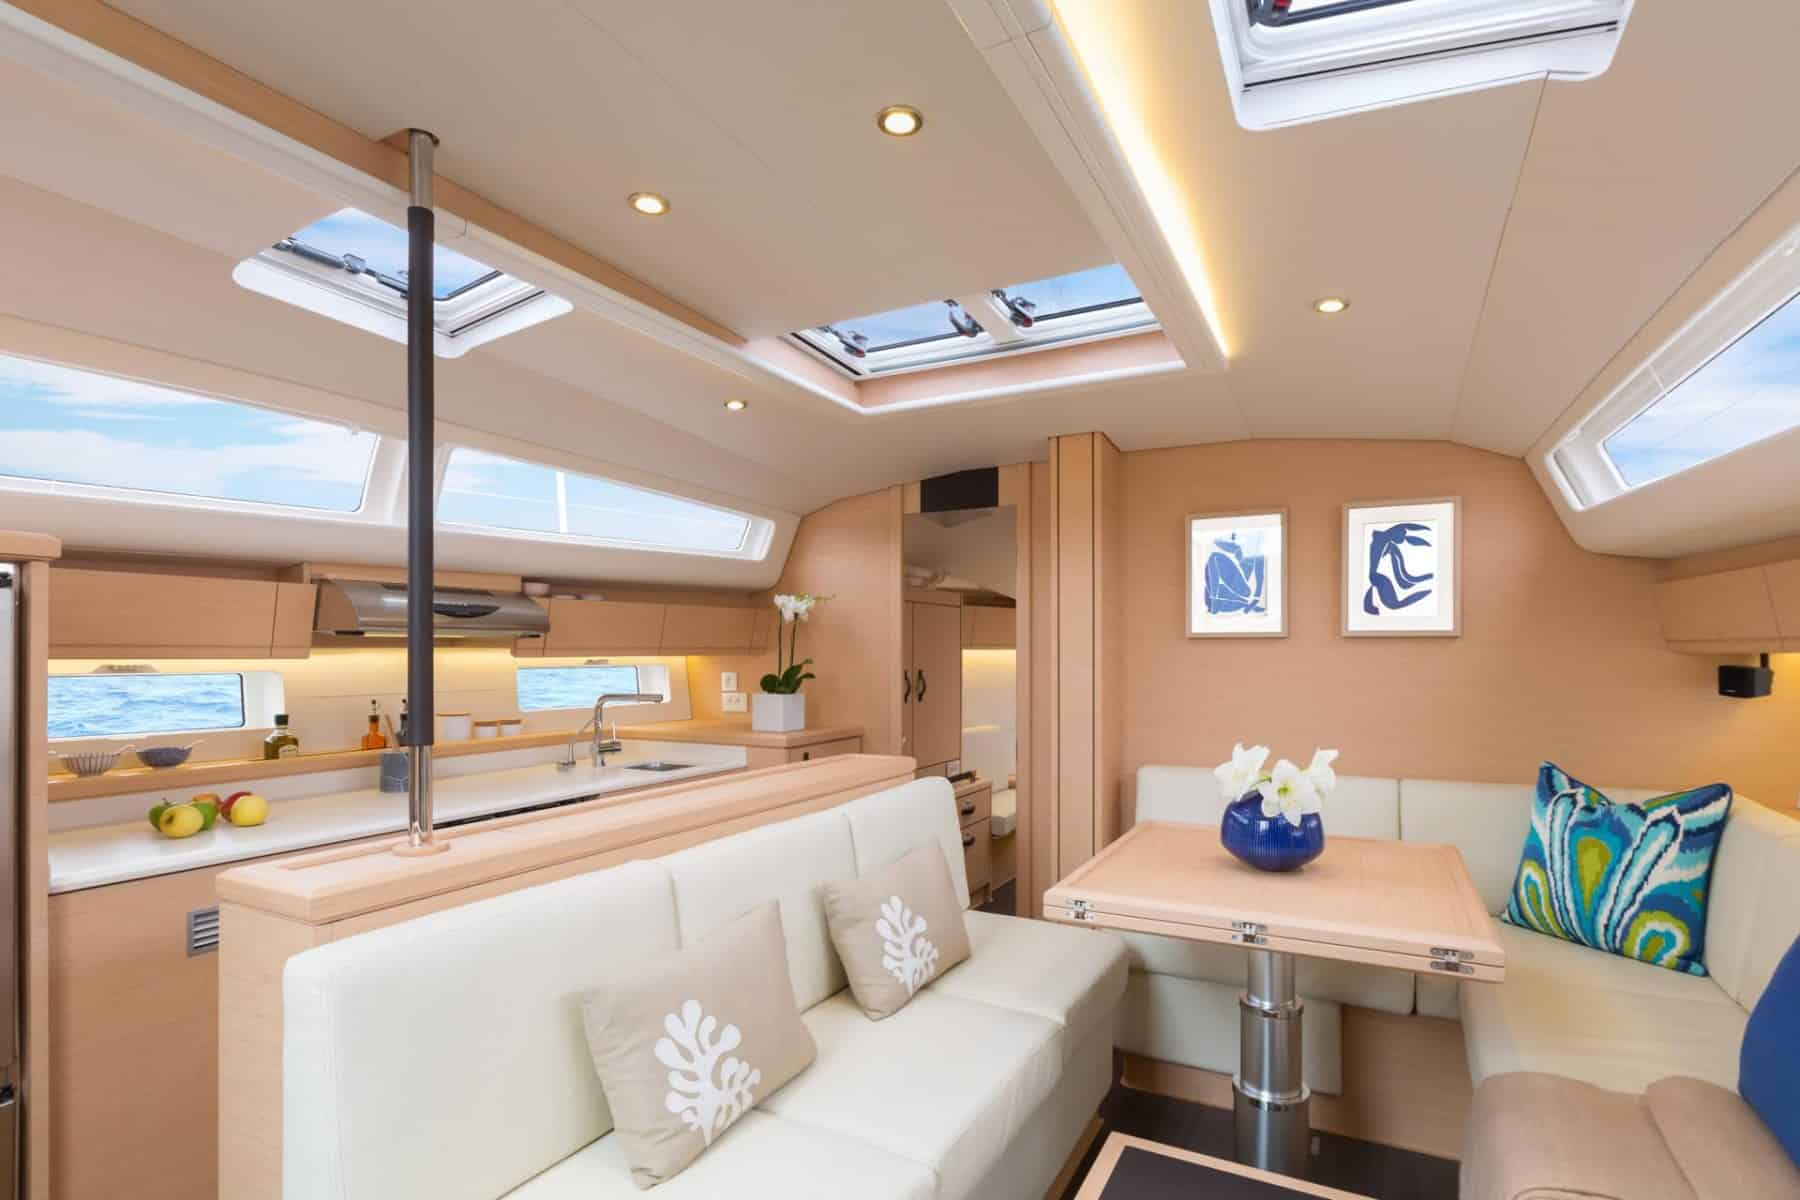 Jeanneau-54-interior-saloon-2-charter-ownership-yacht